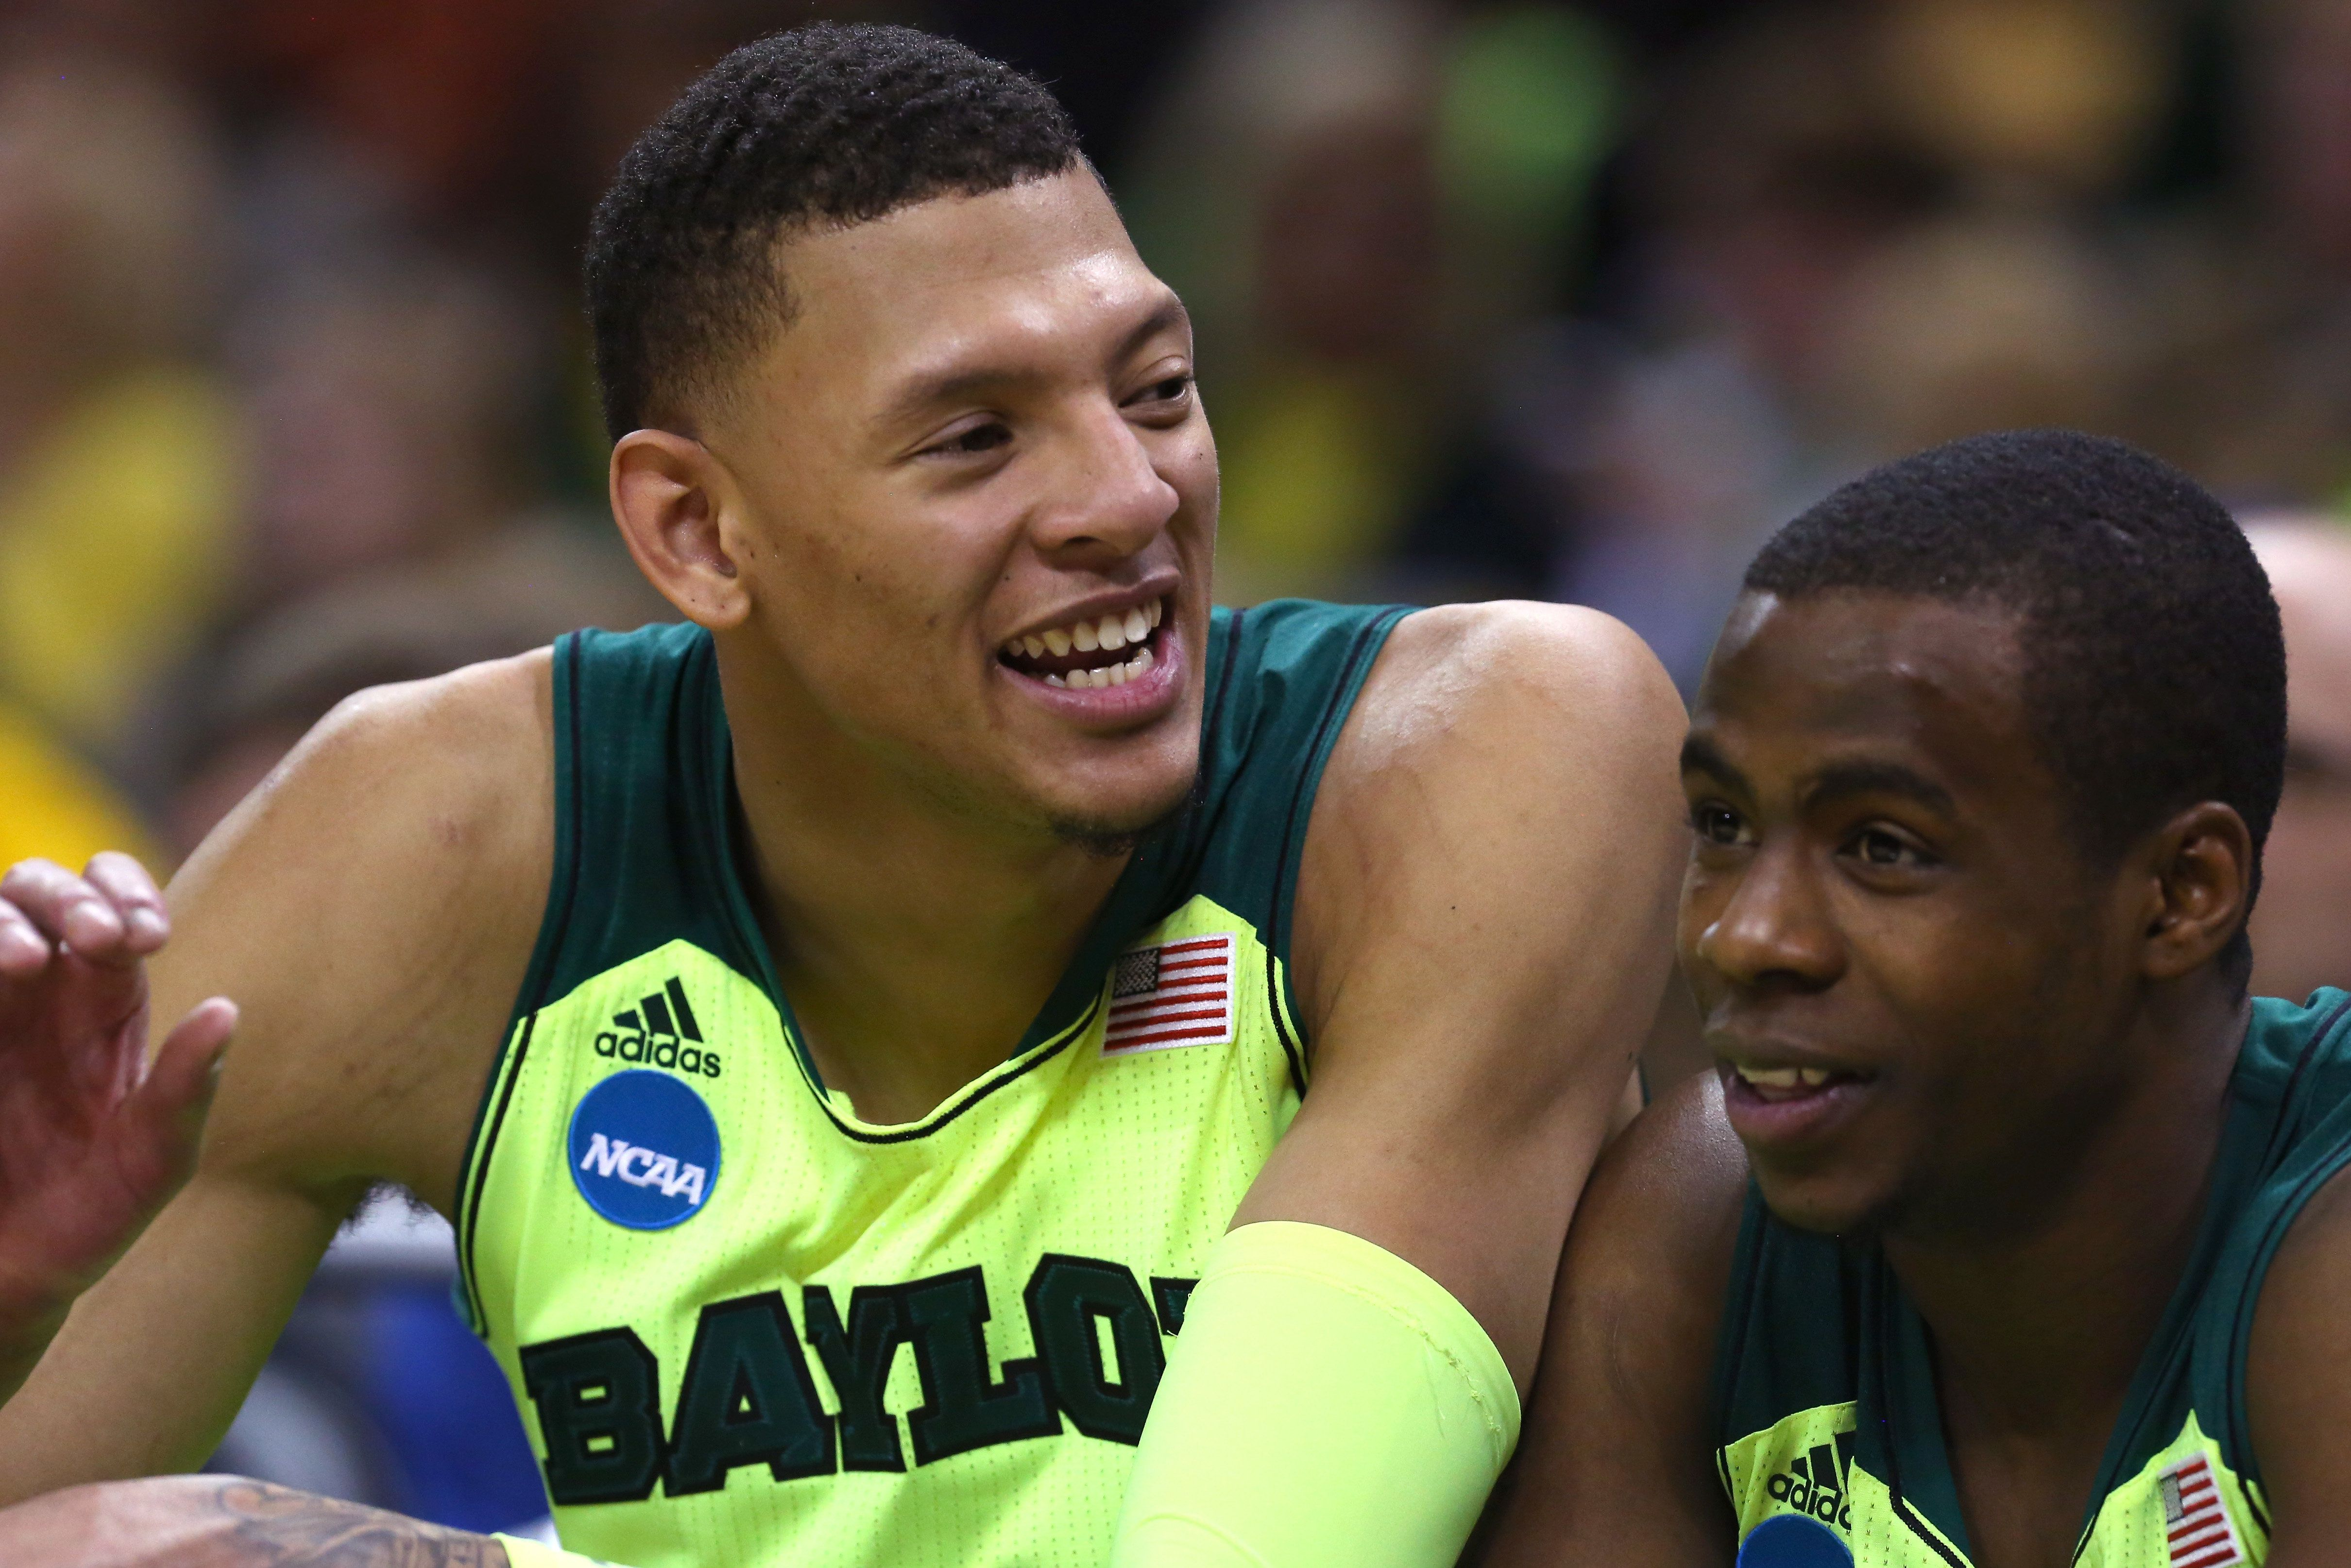 Isaiah Austin averaged 12 points and 7 rebounds during his two seasons playing for Baylor.